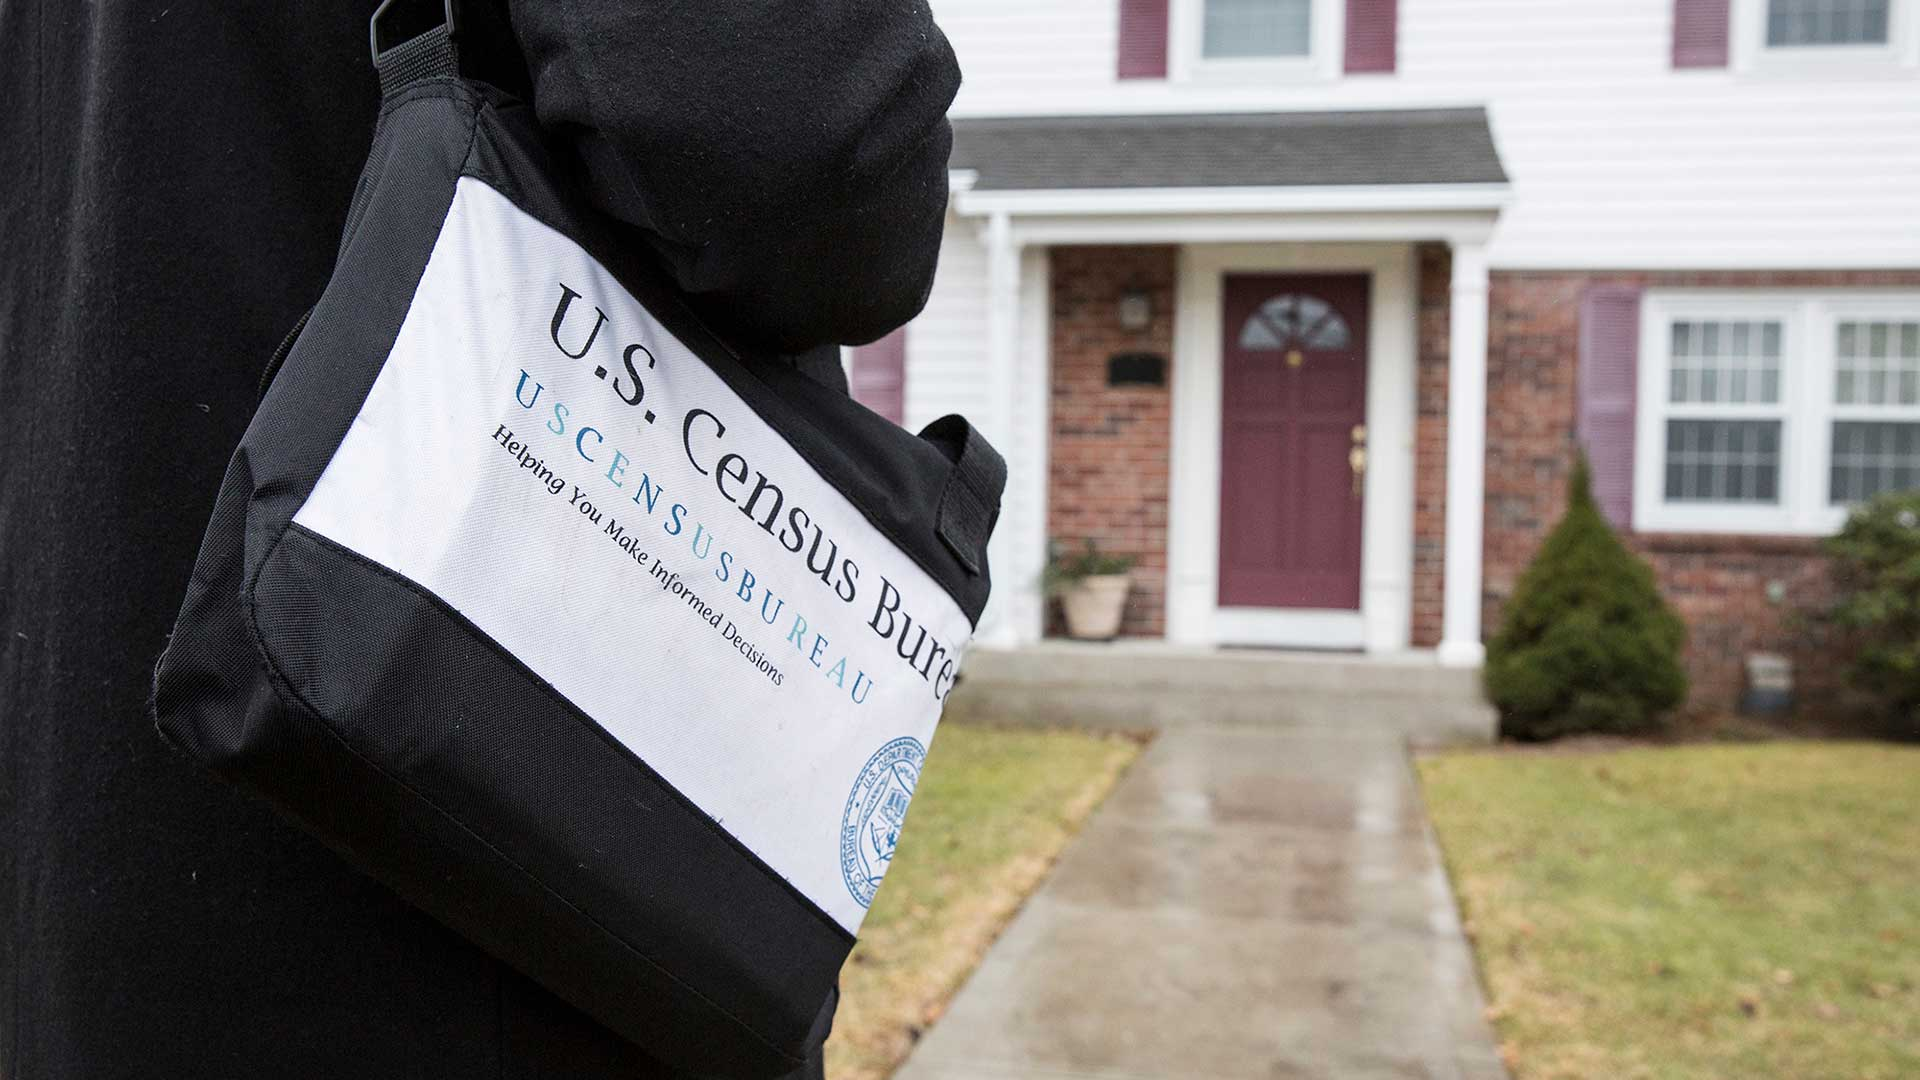 "A Census Bureau plan to move up the deadline to end ""enumeration,"" the process of counting U.S. residents, from Oct. 31 to Sept. 30 was put on hold by a federal judge. Critics, including the Navajo and Gila River tribes, had sued to block the move, which they said would lead to an undercount, particularly for minority communities."